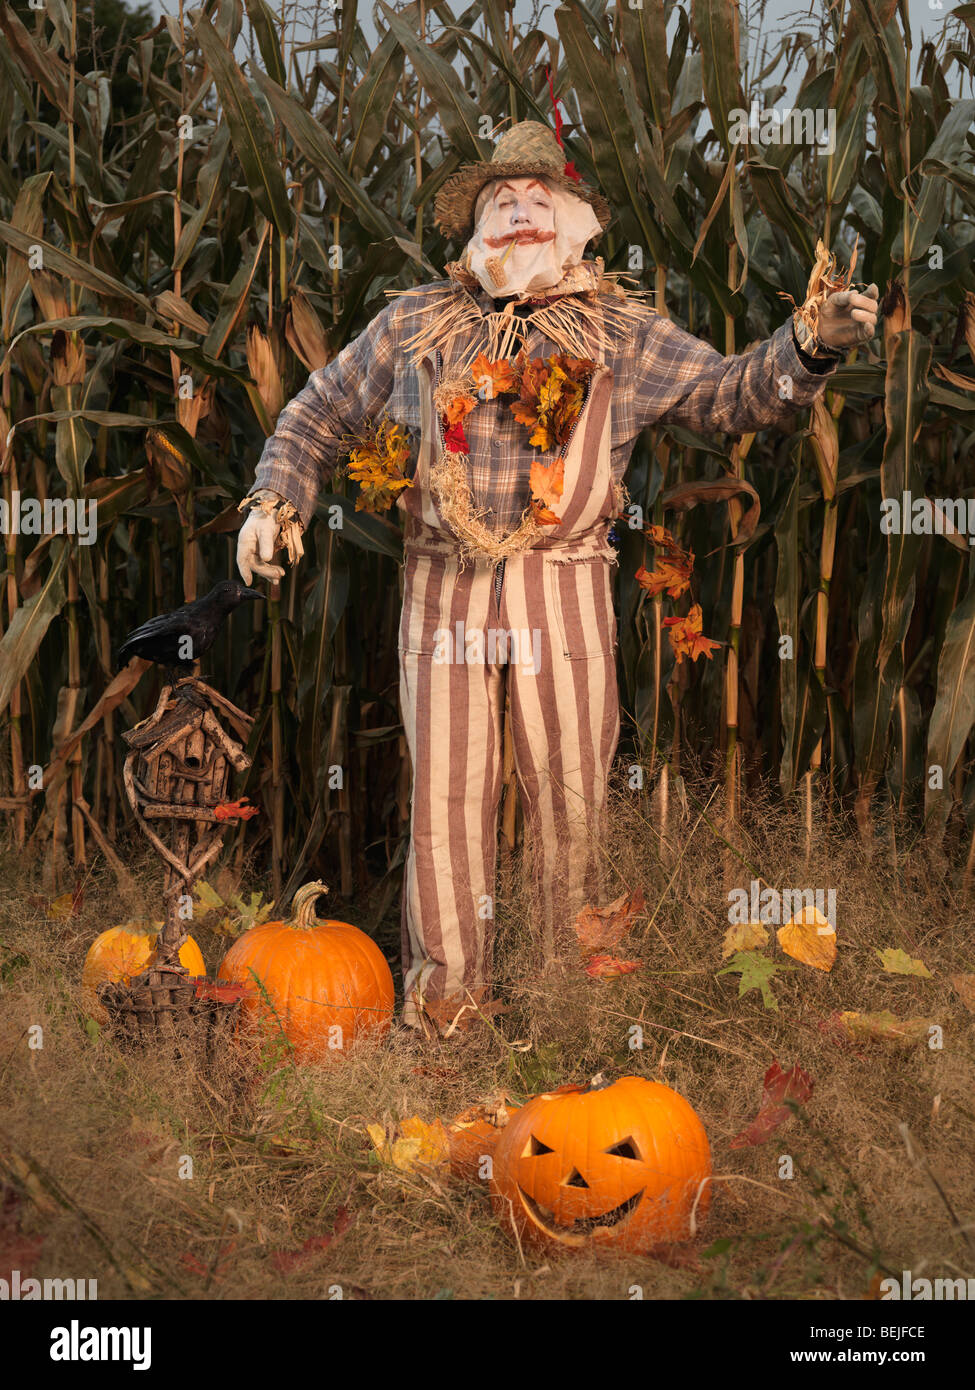 Scarecrow and pumpkins in a corn field. Halloween theme. - Stock Image